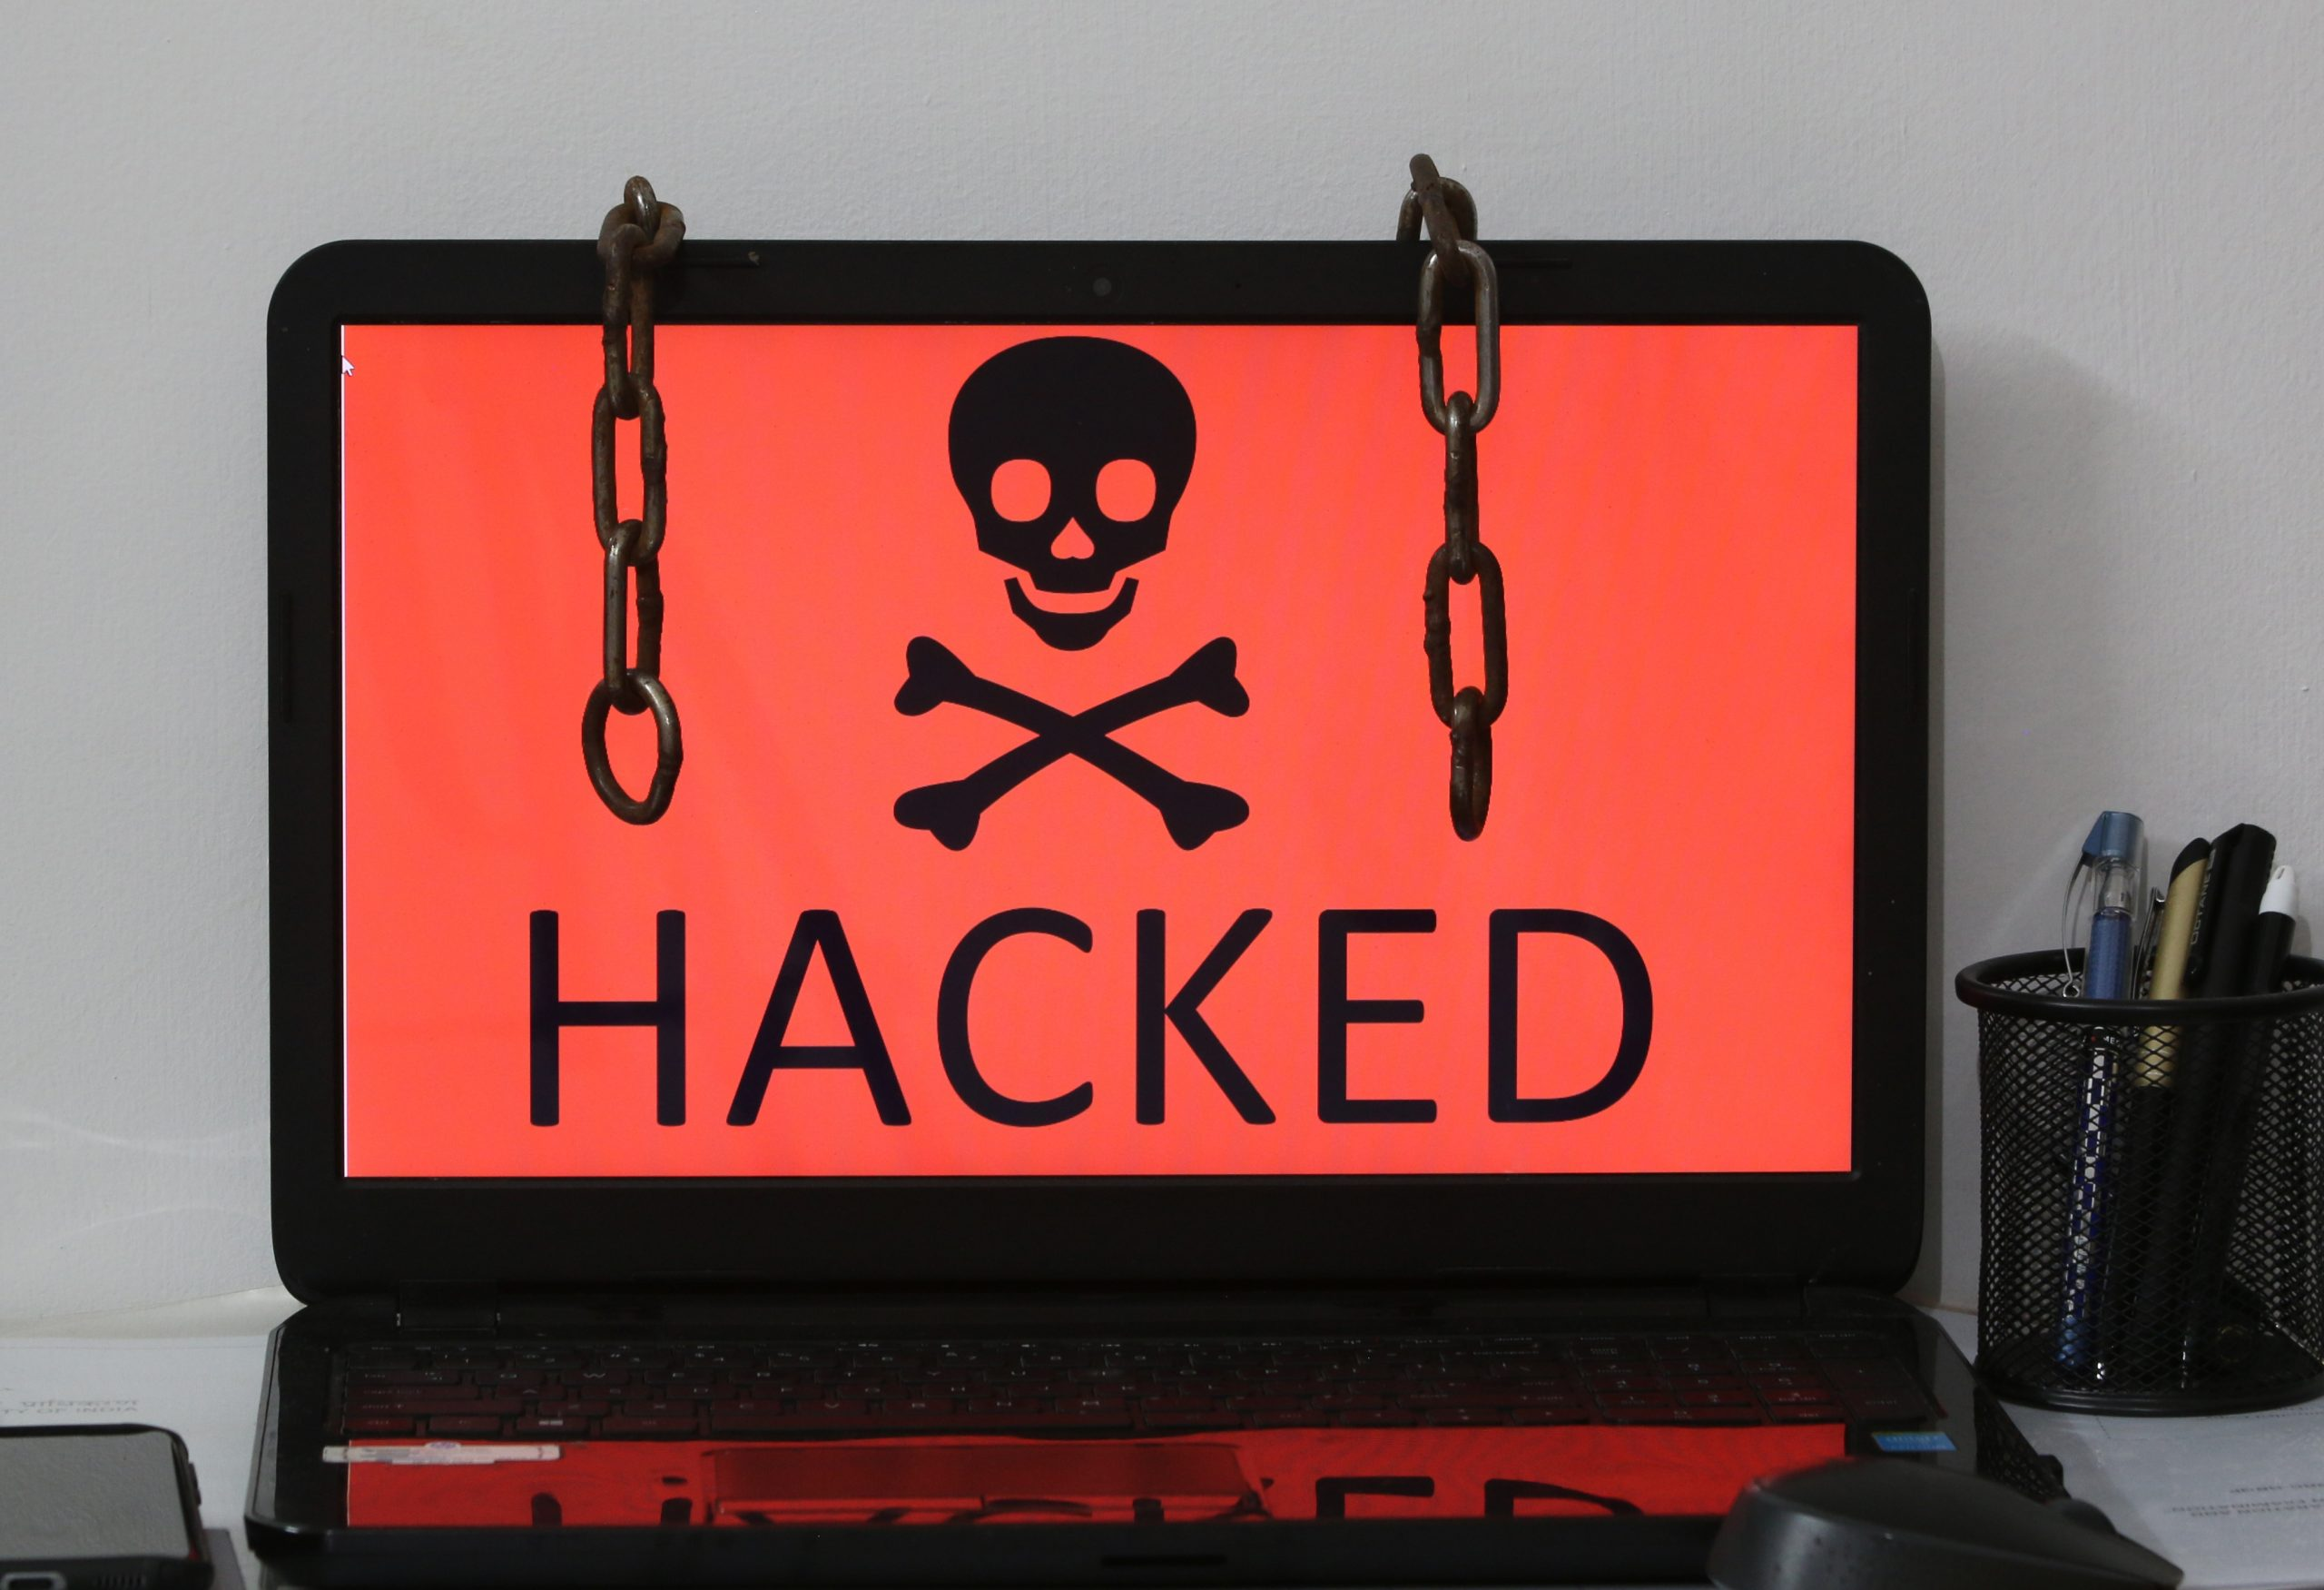 A computer hacked